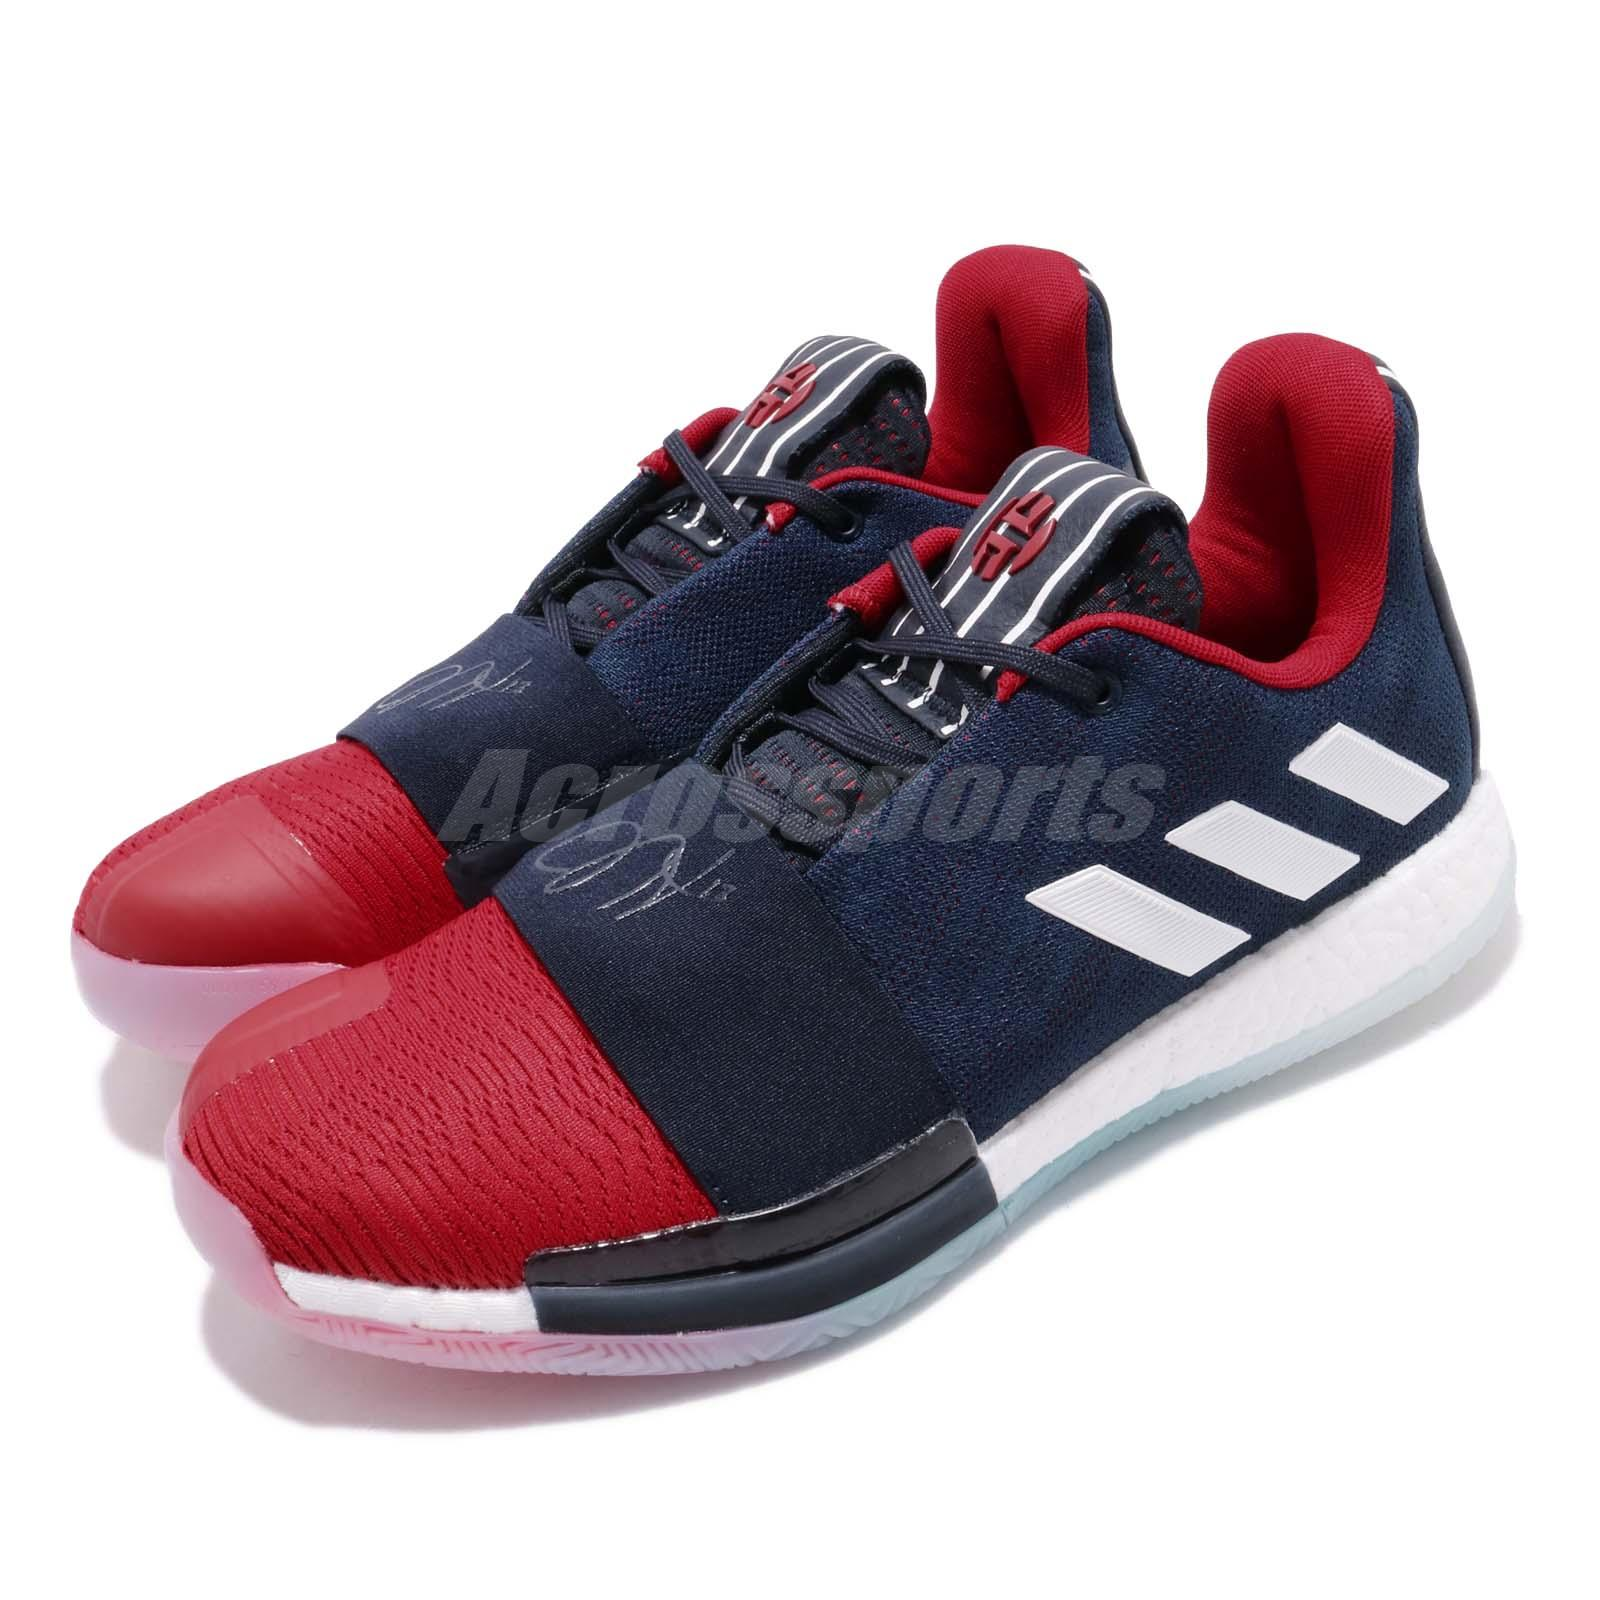 304989e5bbca Details about adidas Harden Vol. 3 Shark Navy Red White James Mens  Basketball Shoes EE3954